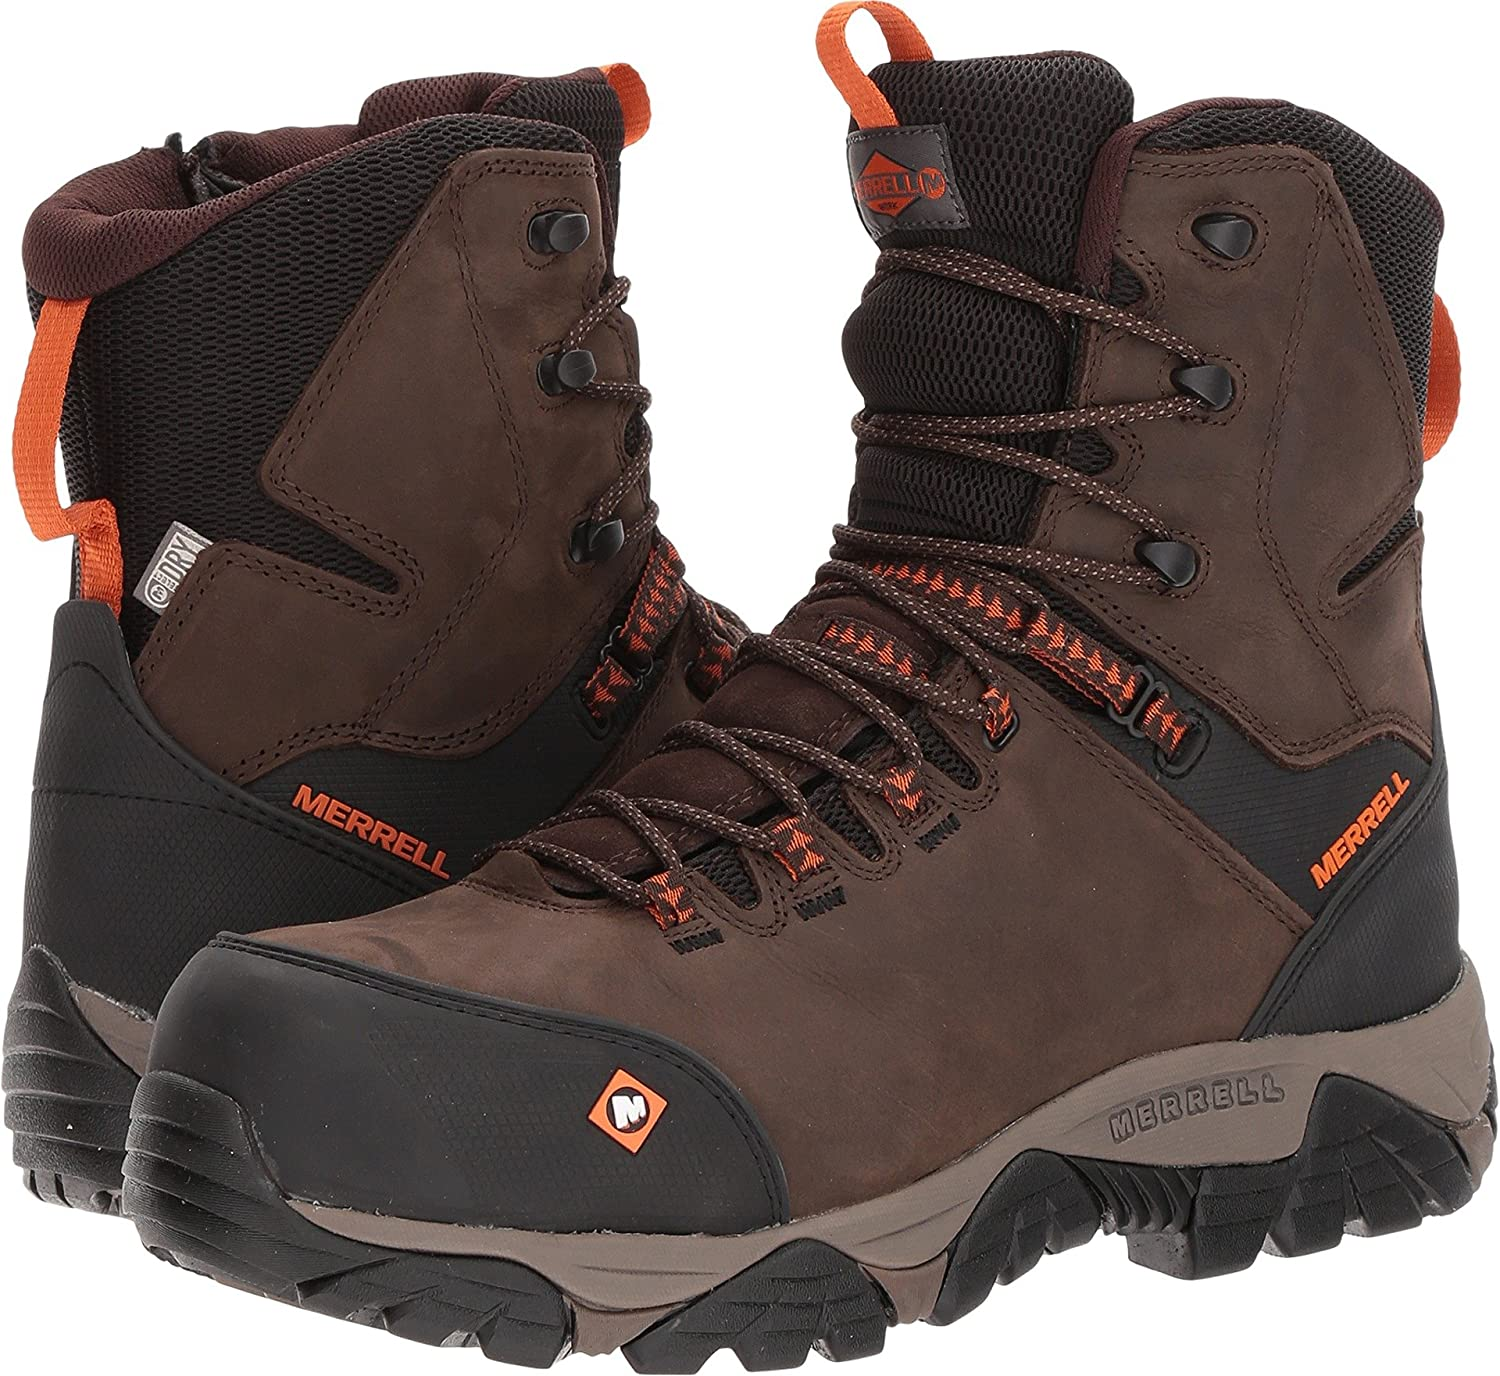 c7727be4a6 Merrell Work Men's Phaserbound 8